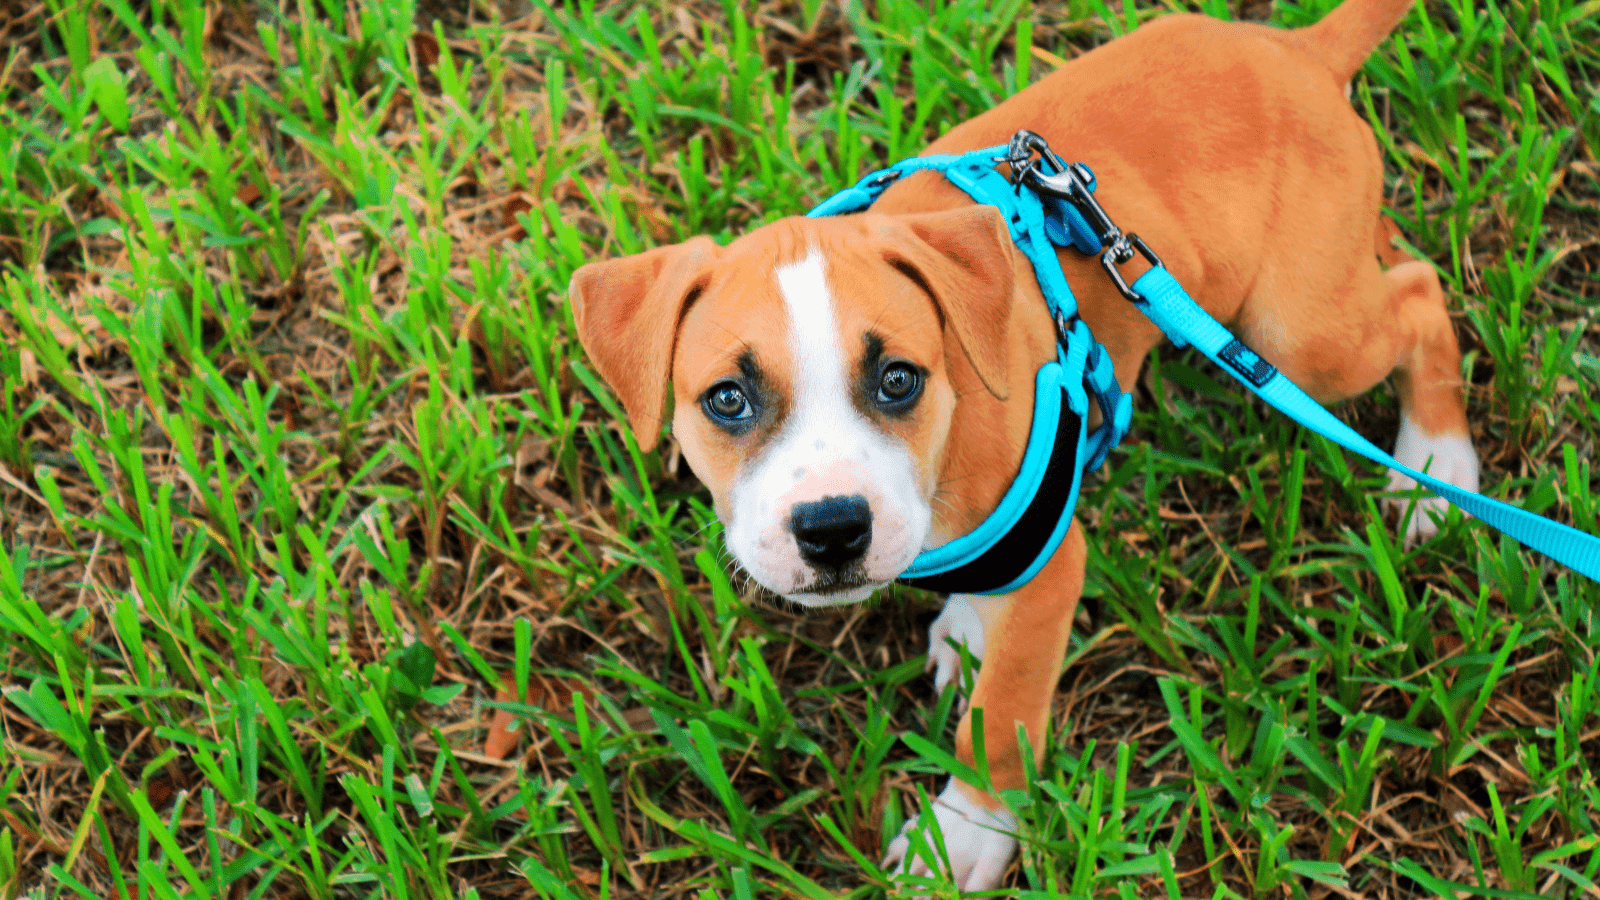 How to train your puppy to wear a harness